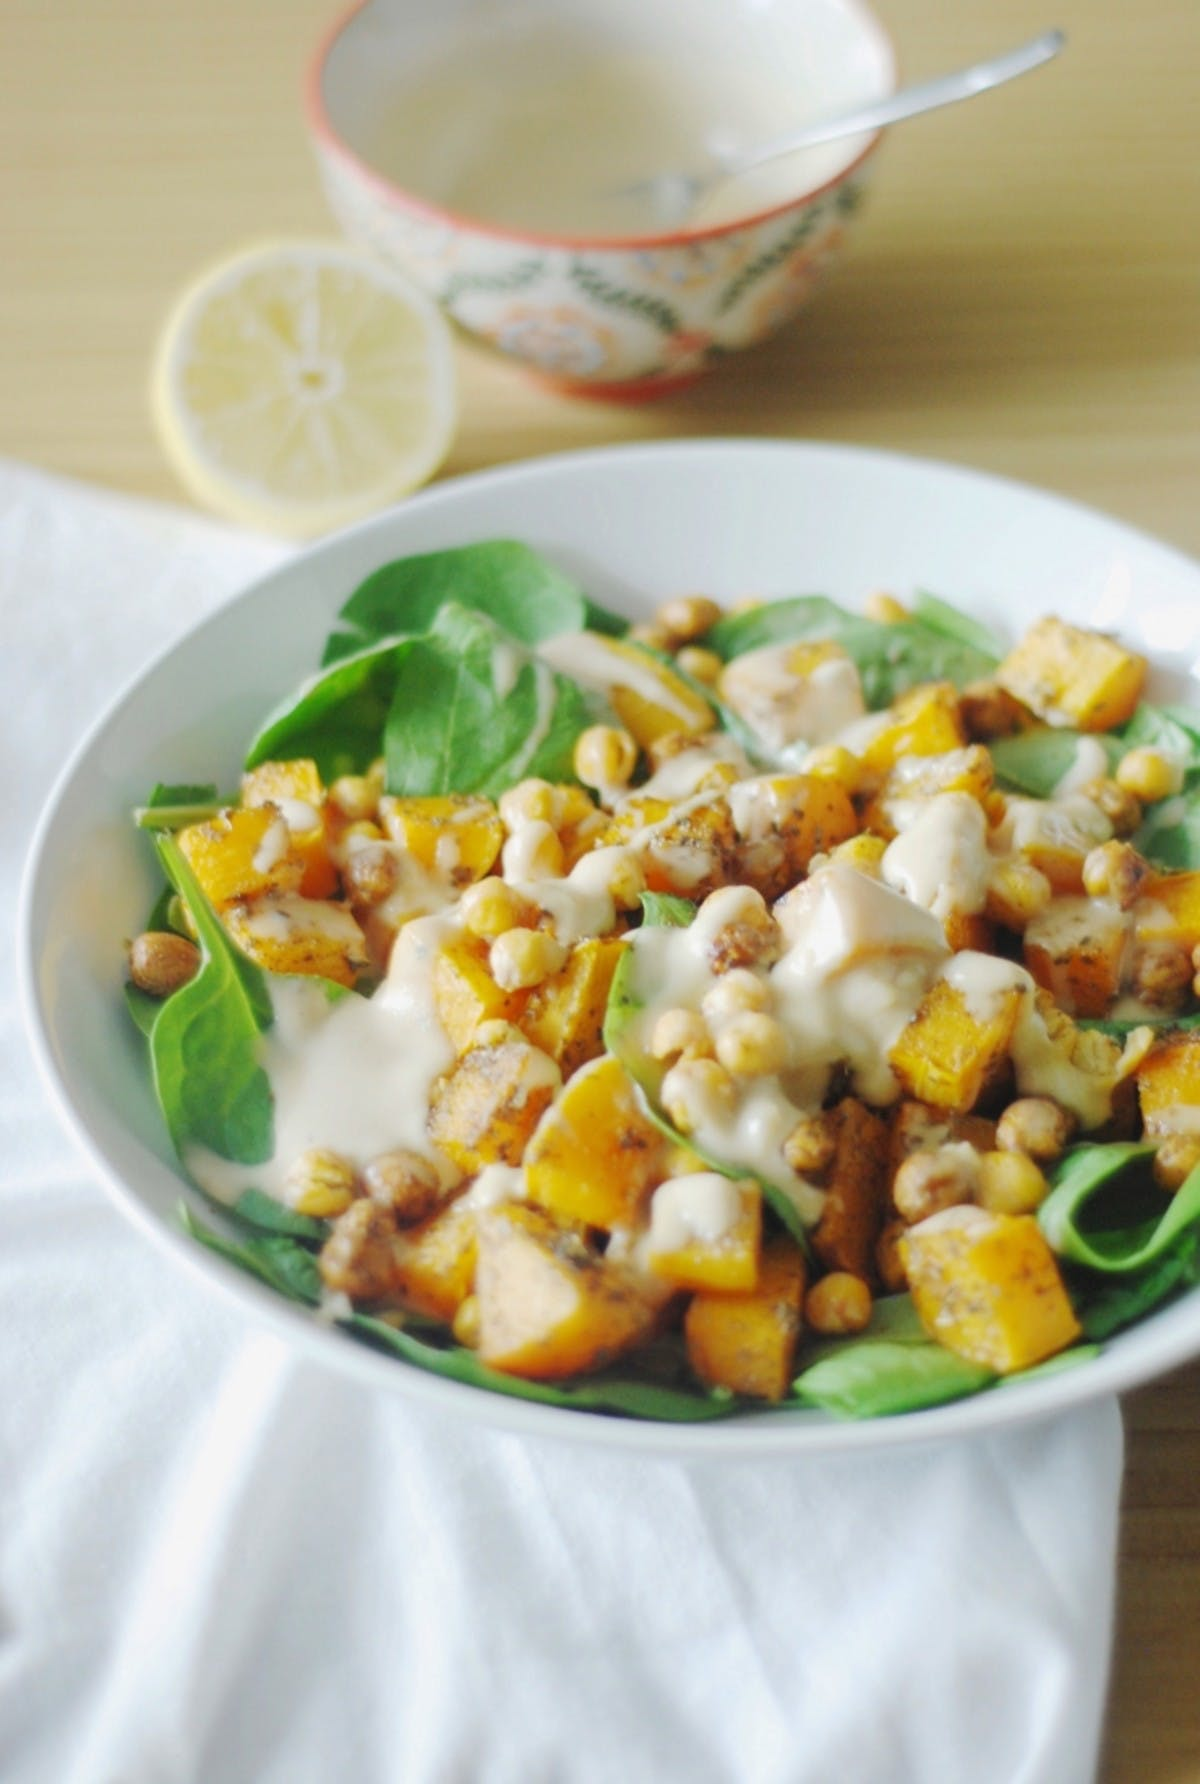 Spiced Butternut Squash and Crispy Chickpea Salad with Tahini Dressing